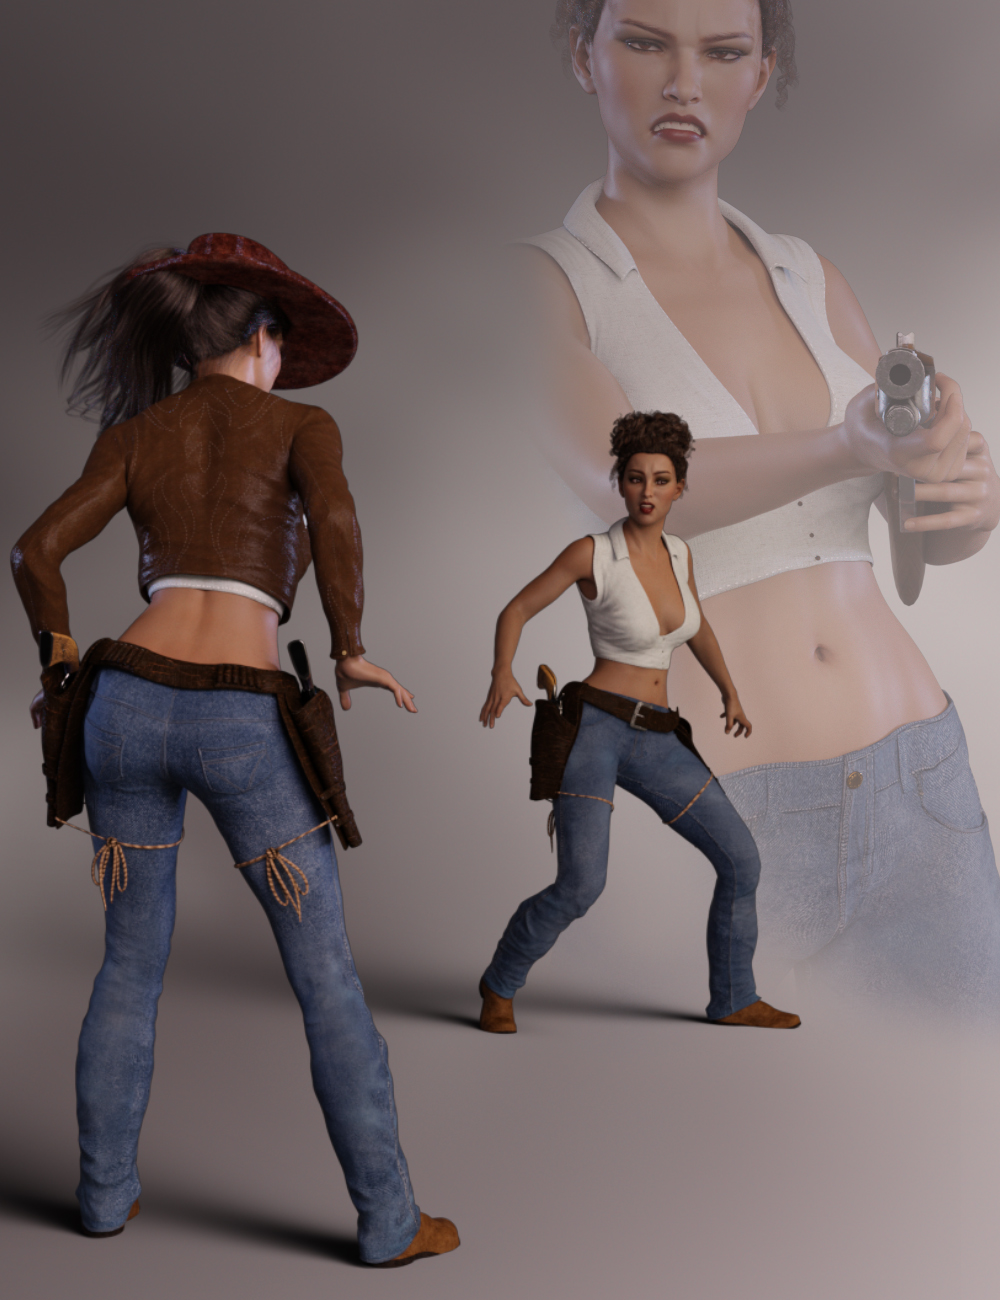 Ruthless for Honni 8 and Genesis 8 Female by: lunchlady, 3D Models by Daz 3D